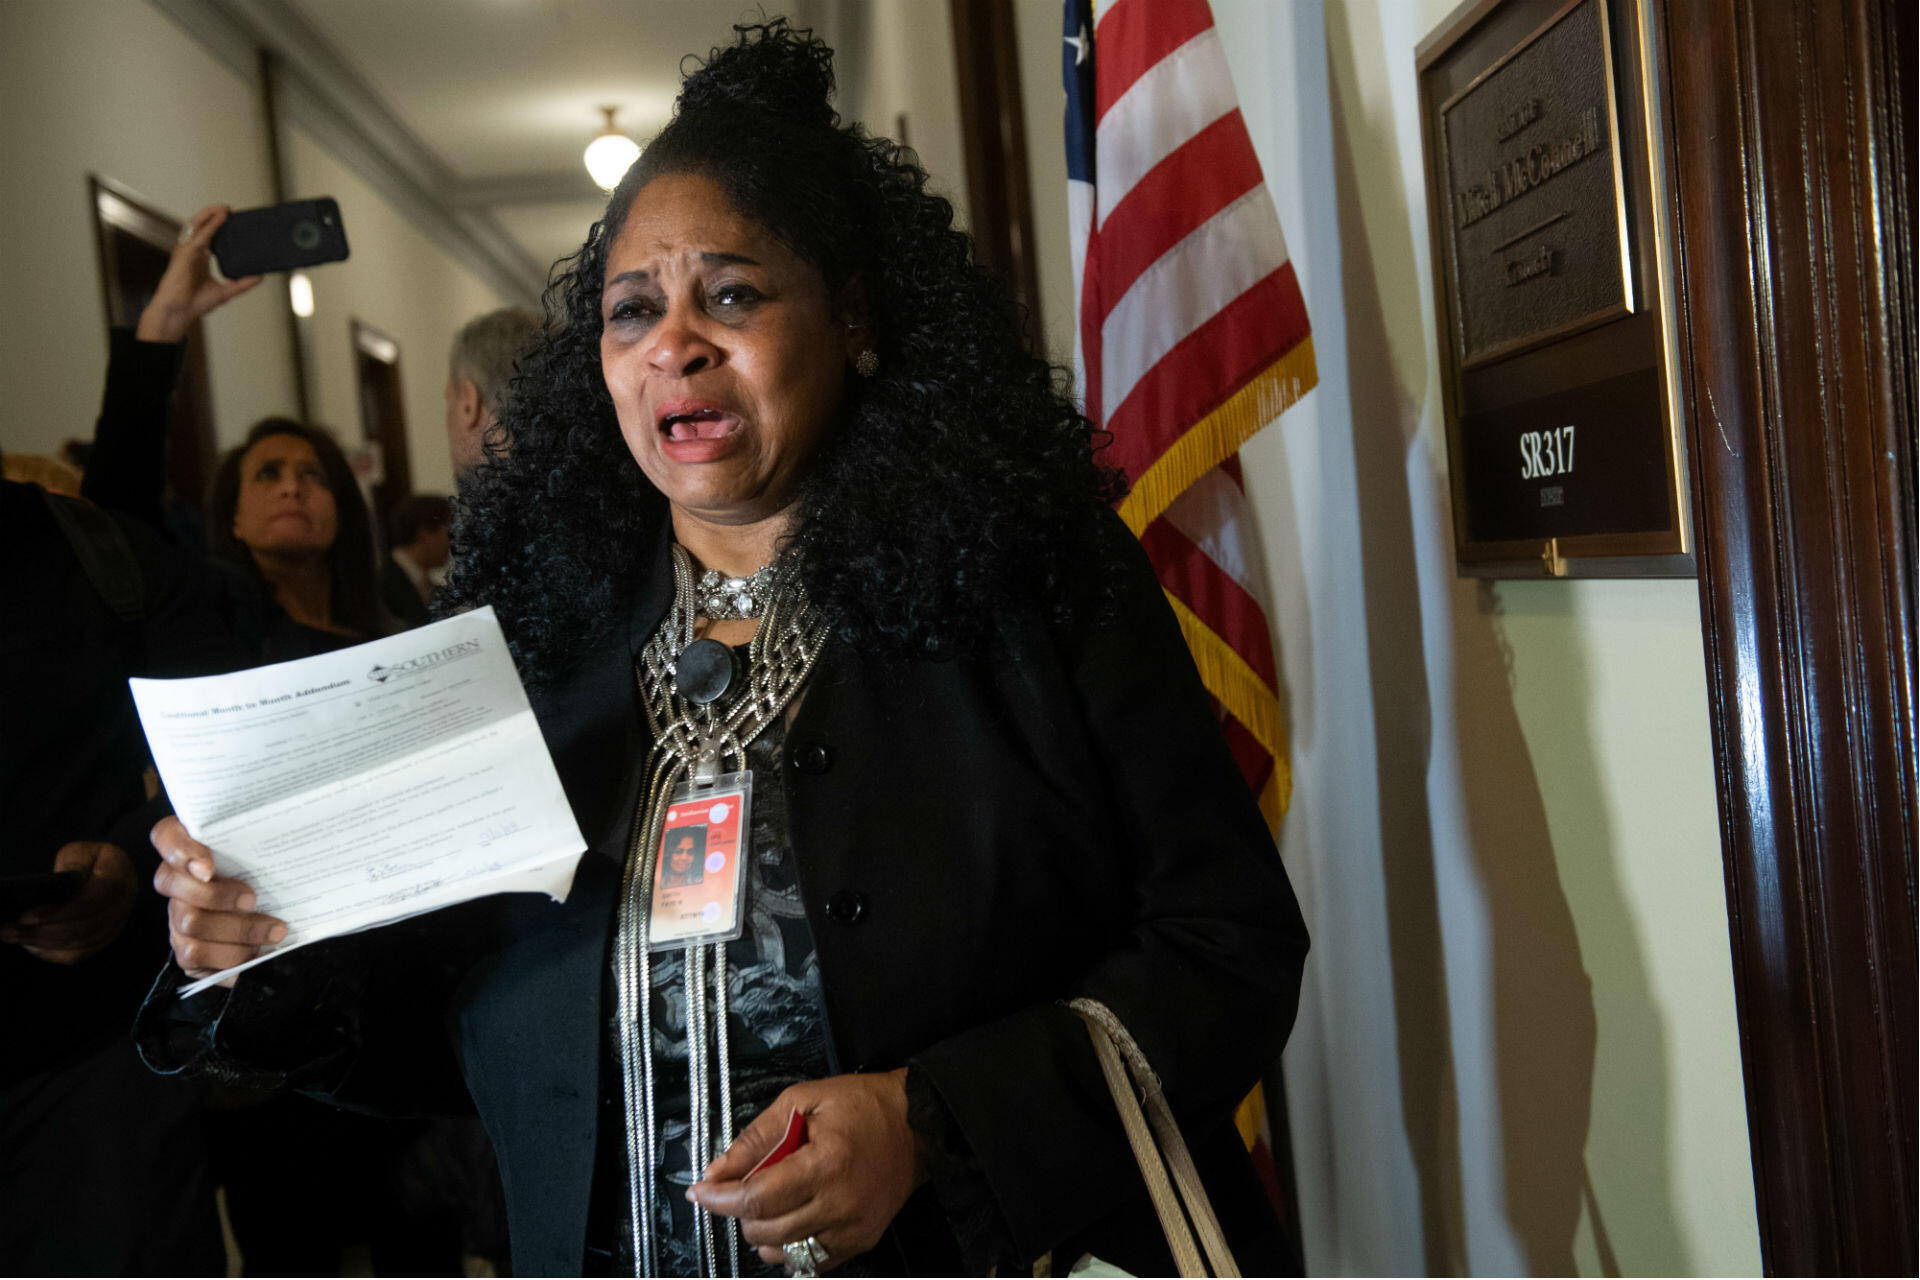 Faye Smith, a furloughed Smithsonian contract worker not paid during the shutdown, holds an unpaid electric bill to present to Senate Majority Leader Mitch McConnell's office on Capitol Hill on January 16, 2019. More than a million contractors have been affected by the shutdown – and, in contrast to federal employees, they are unlikely to receive backpay when business as usual finally resumes.